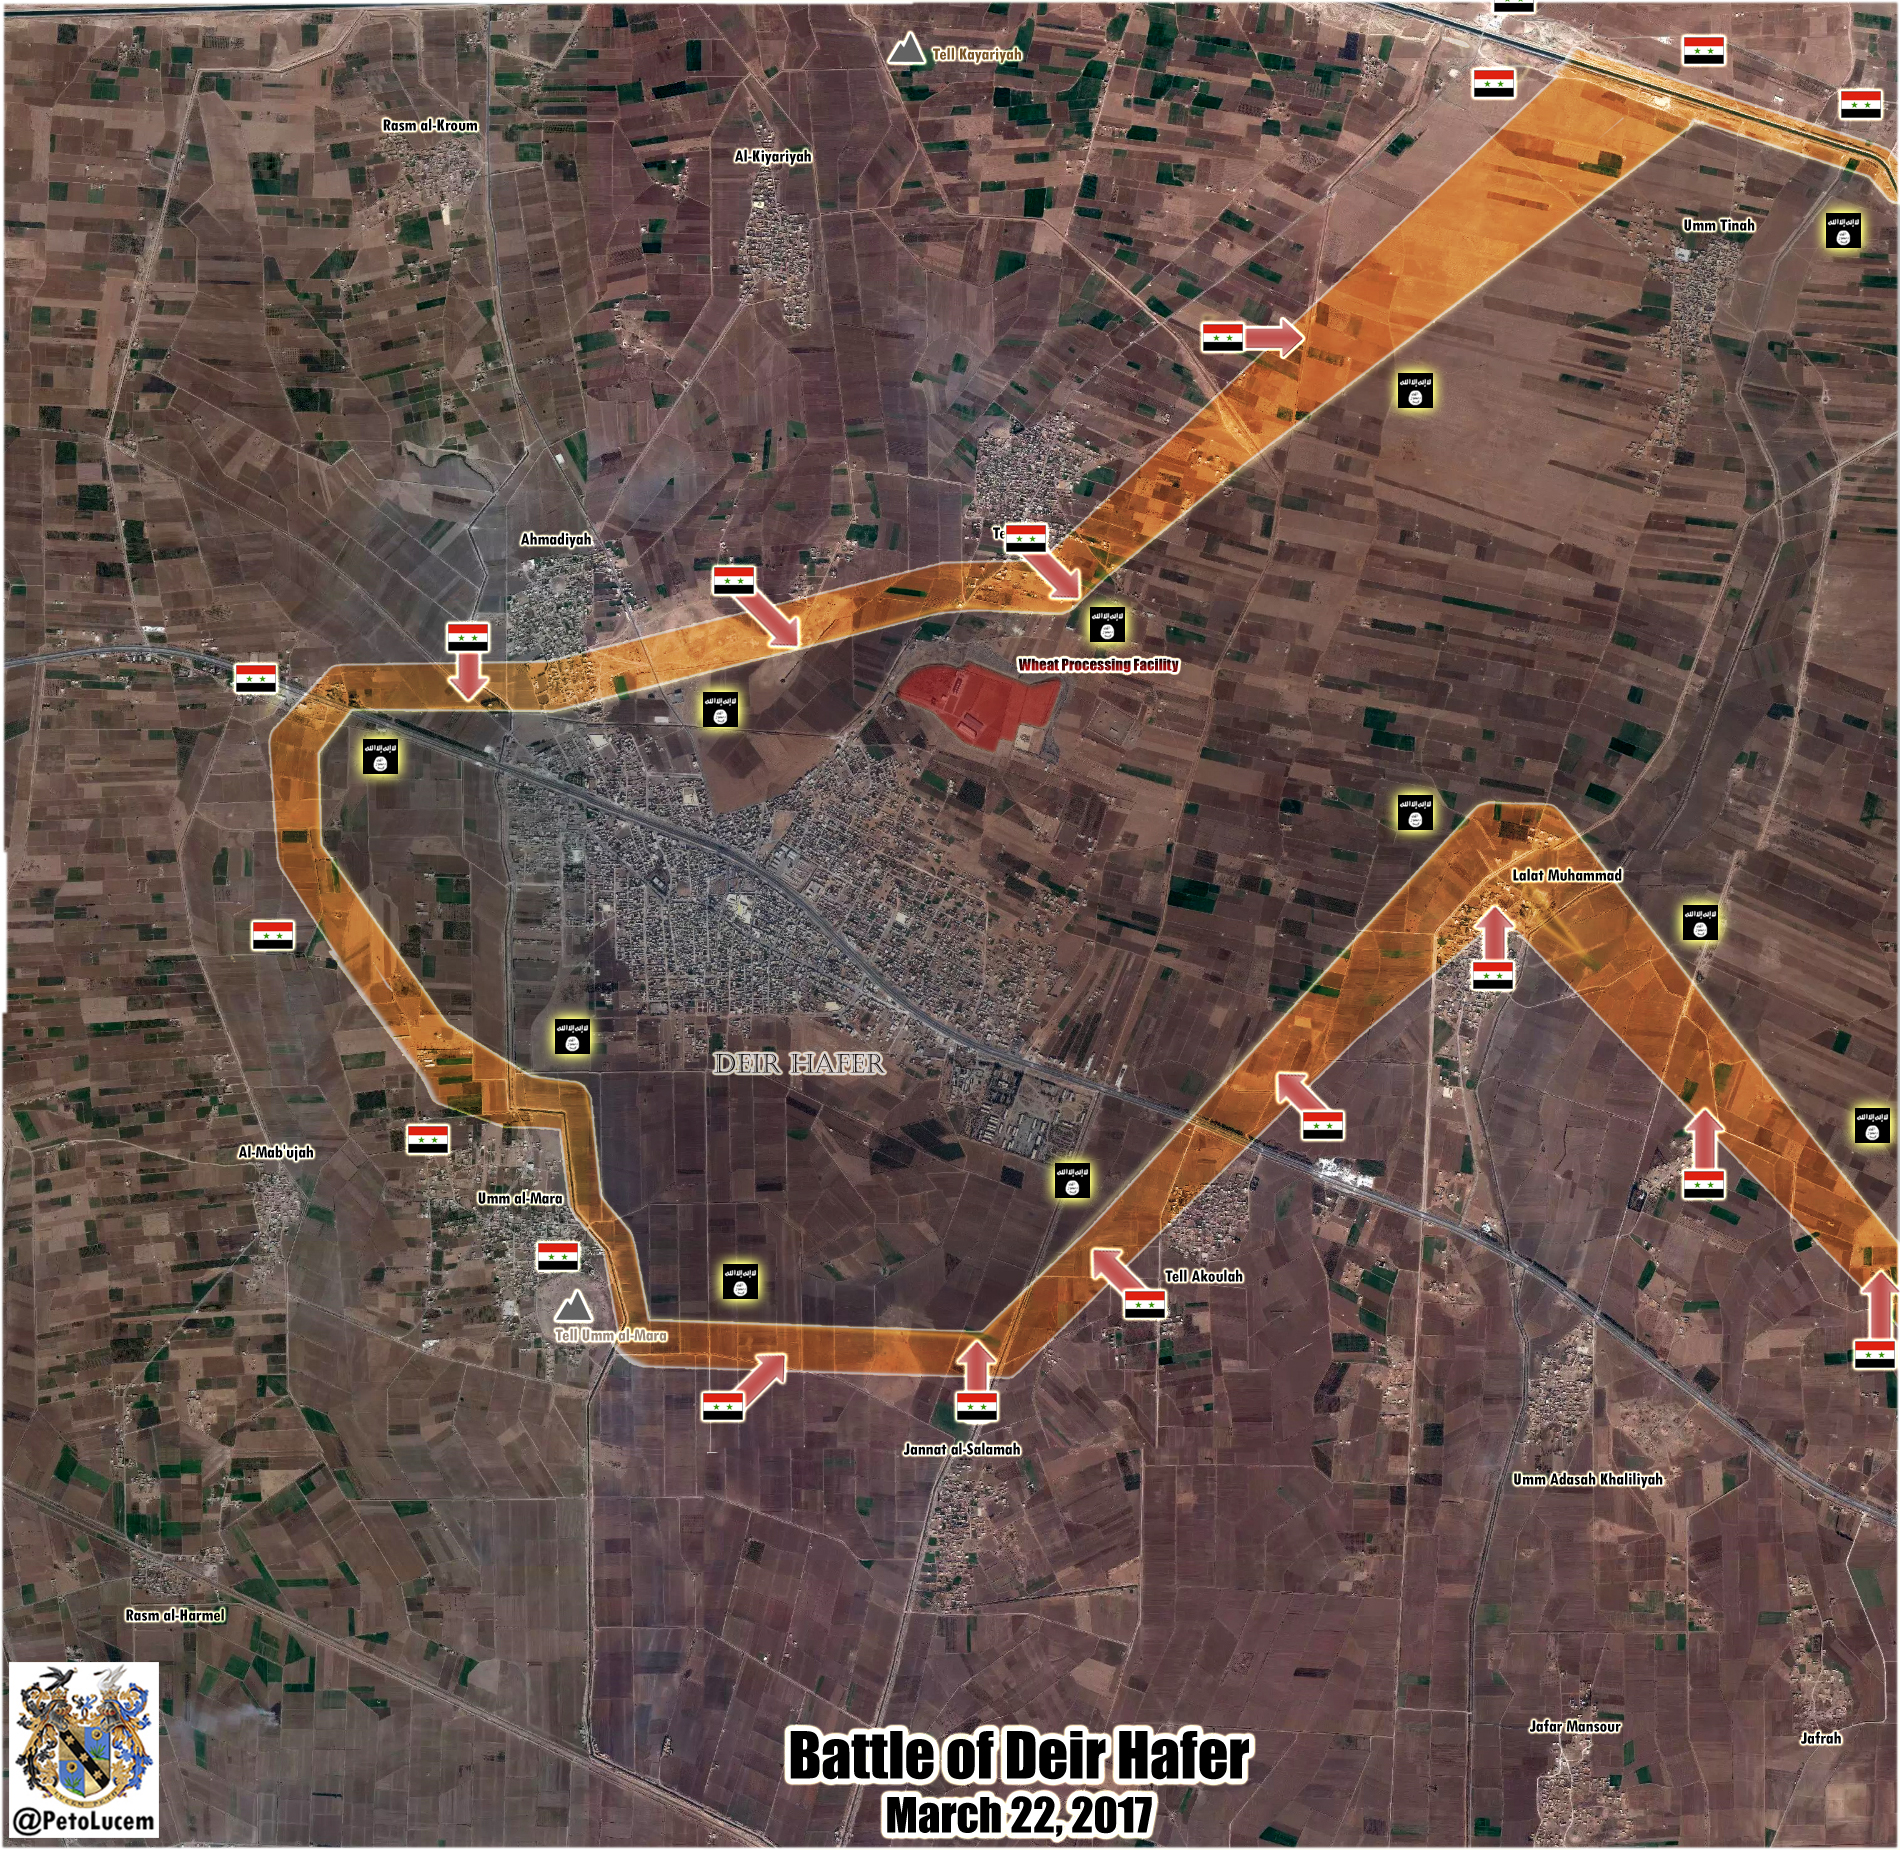 Syrian Army Encircles ISIS Stronghold Of Deir Hafer